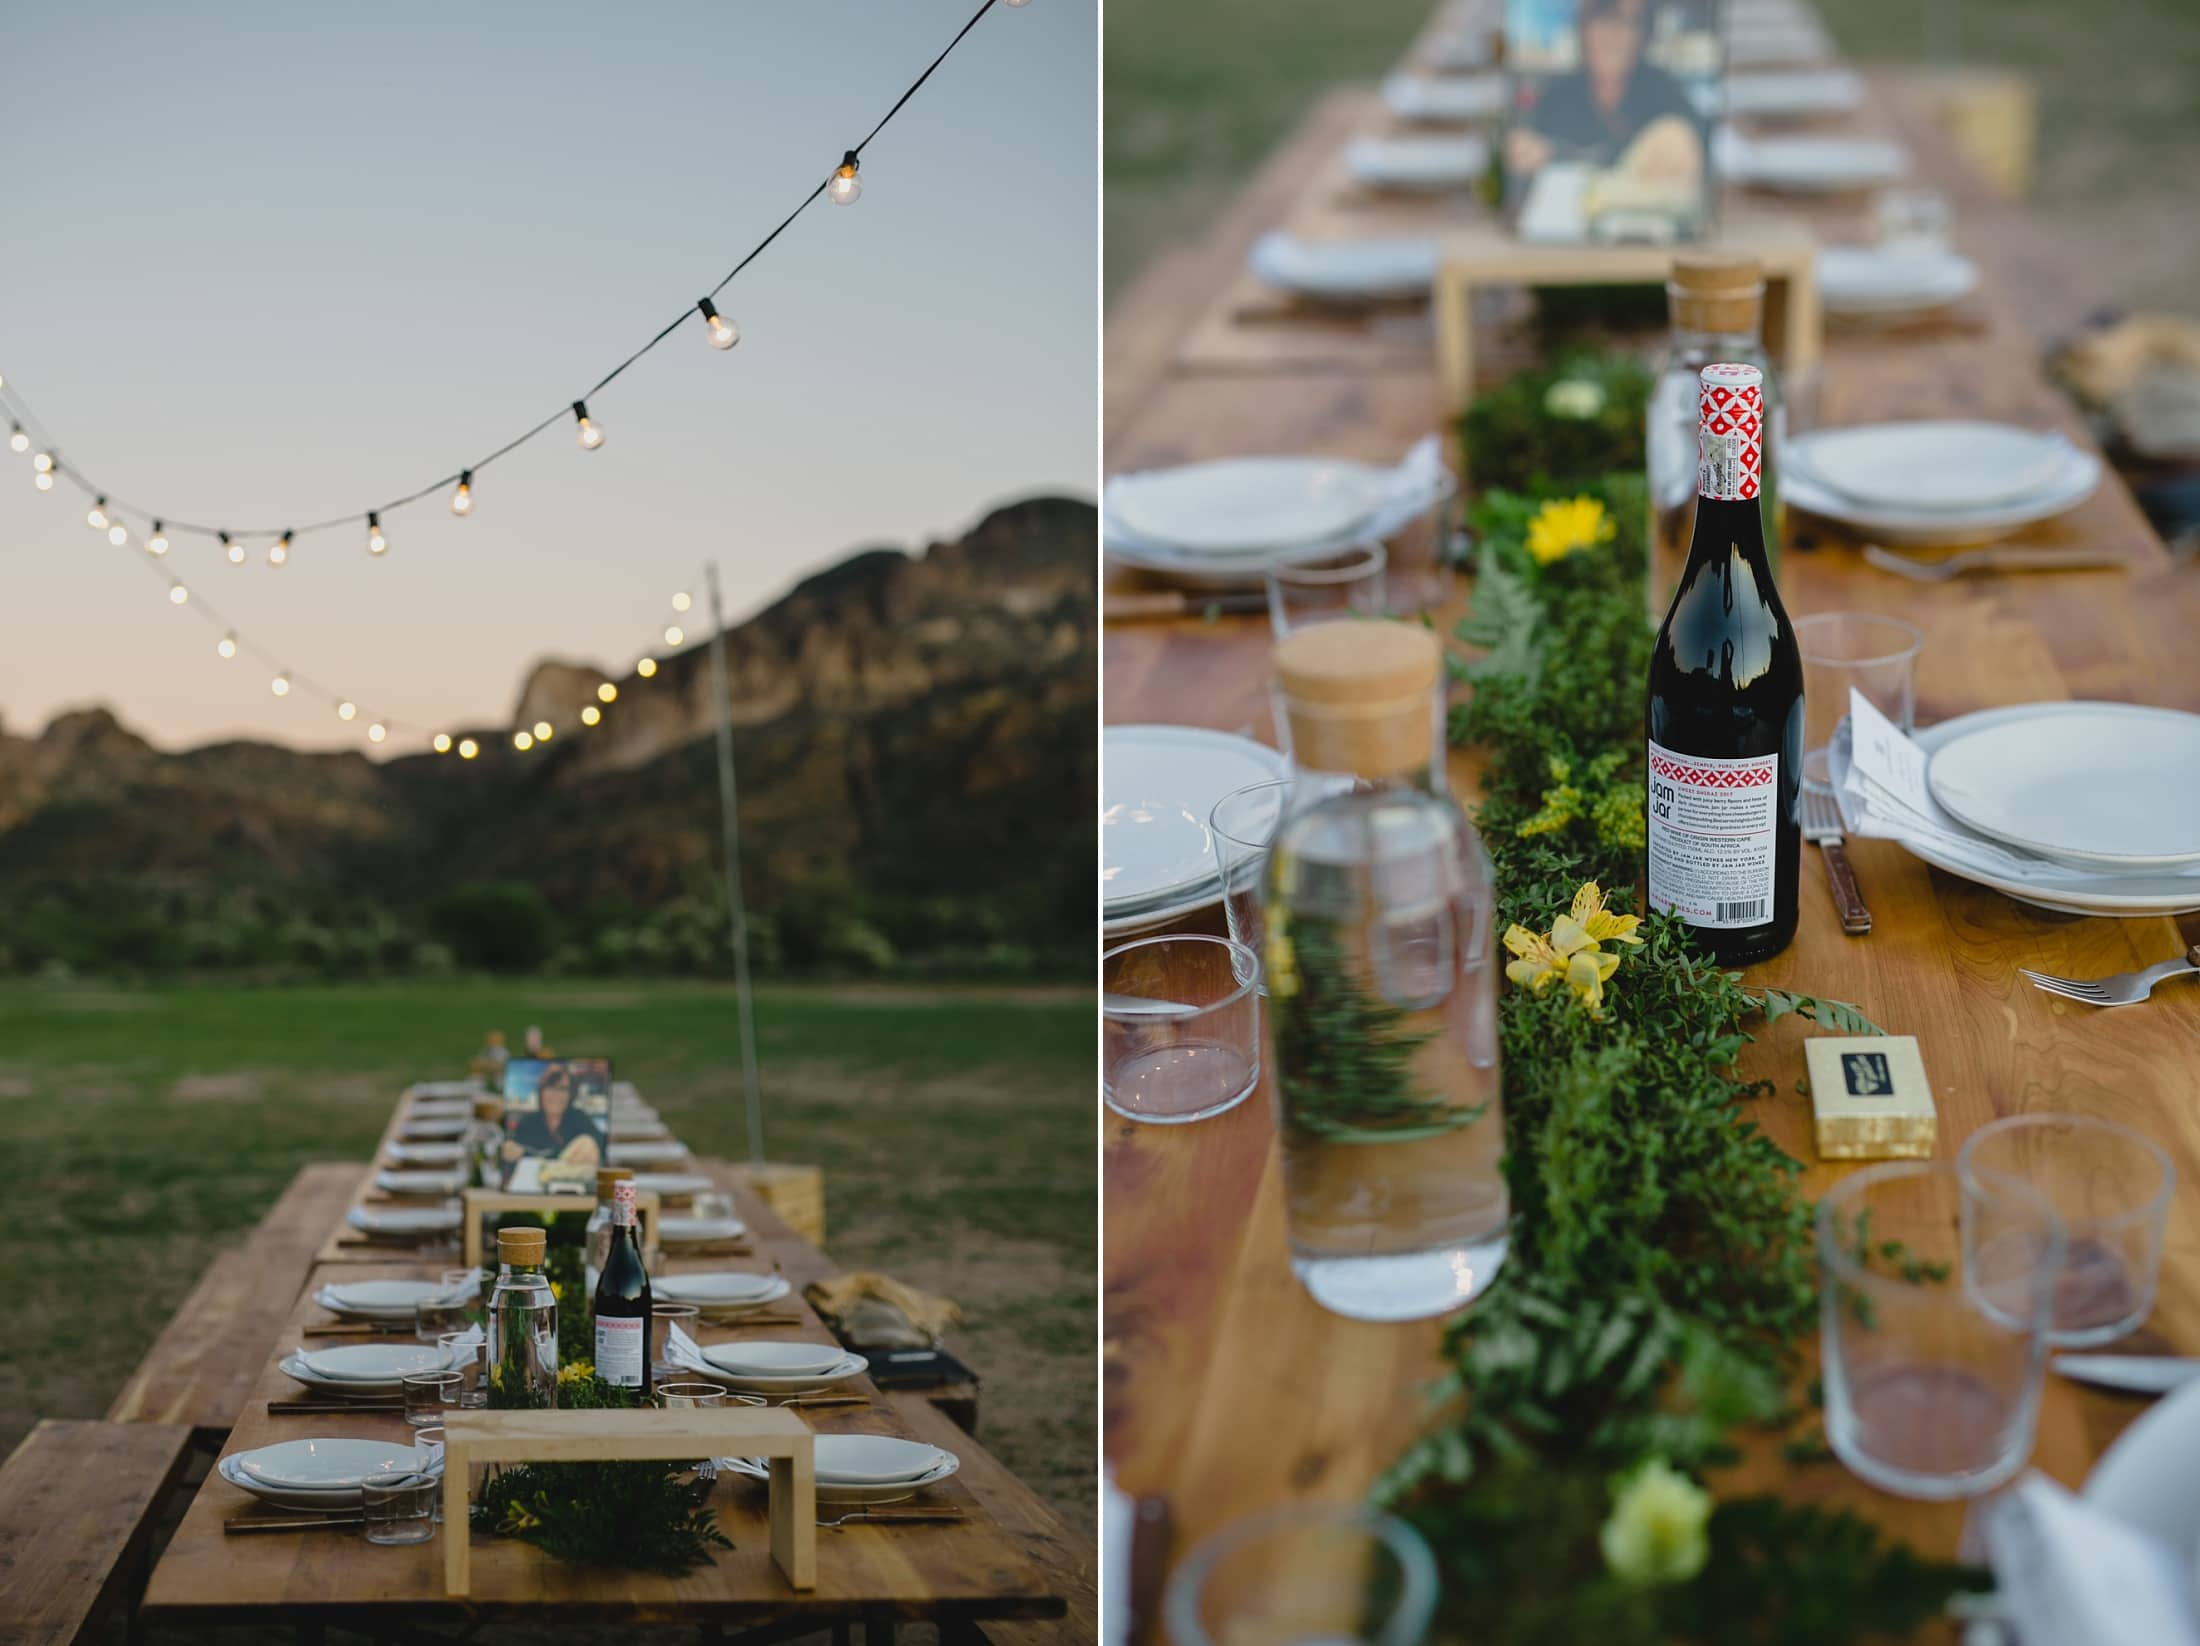 outdoor desert wedding in Arizona with wood tables and string lights